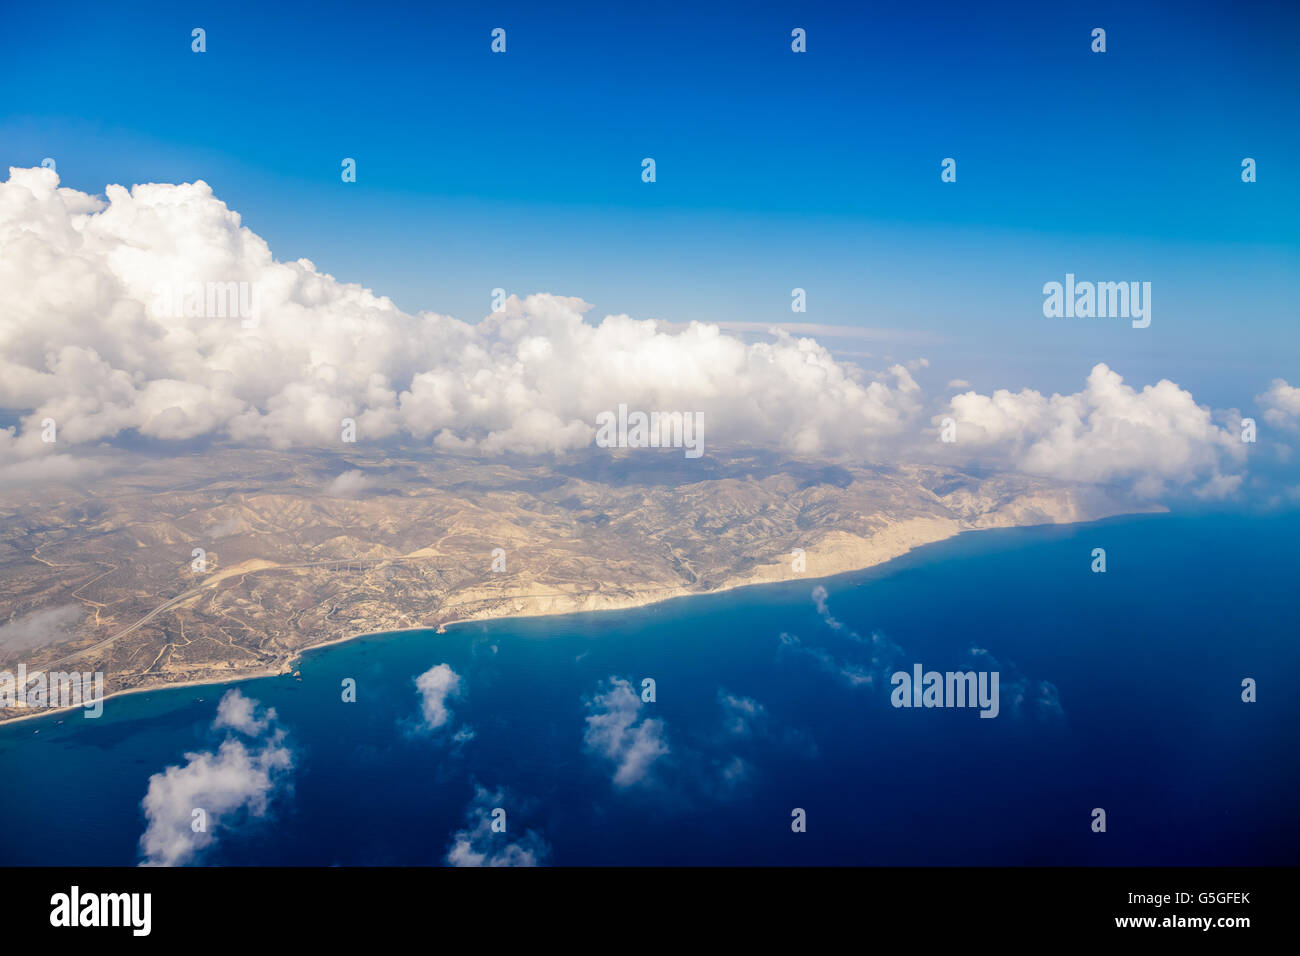 Cyprus island shore and Mediterranian sea view from the airplane. - Stock Image